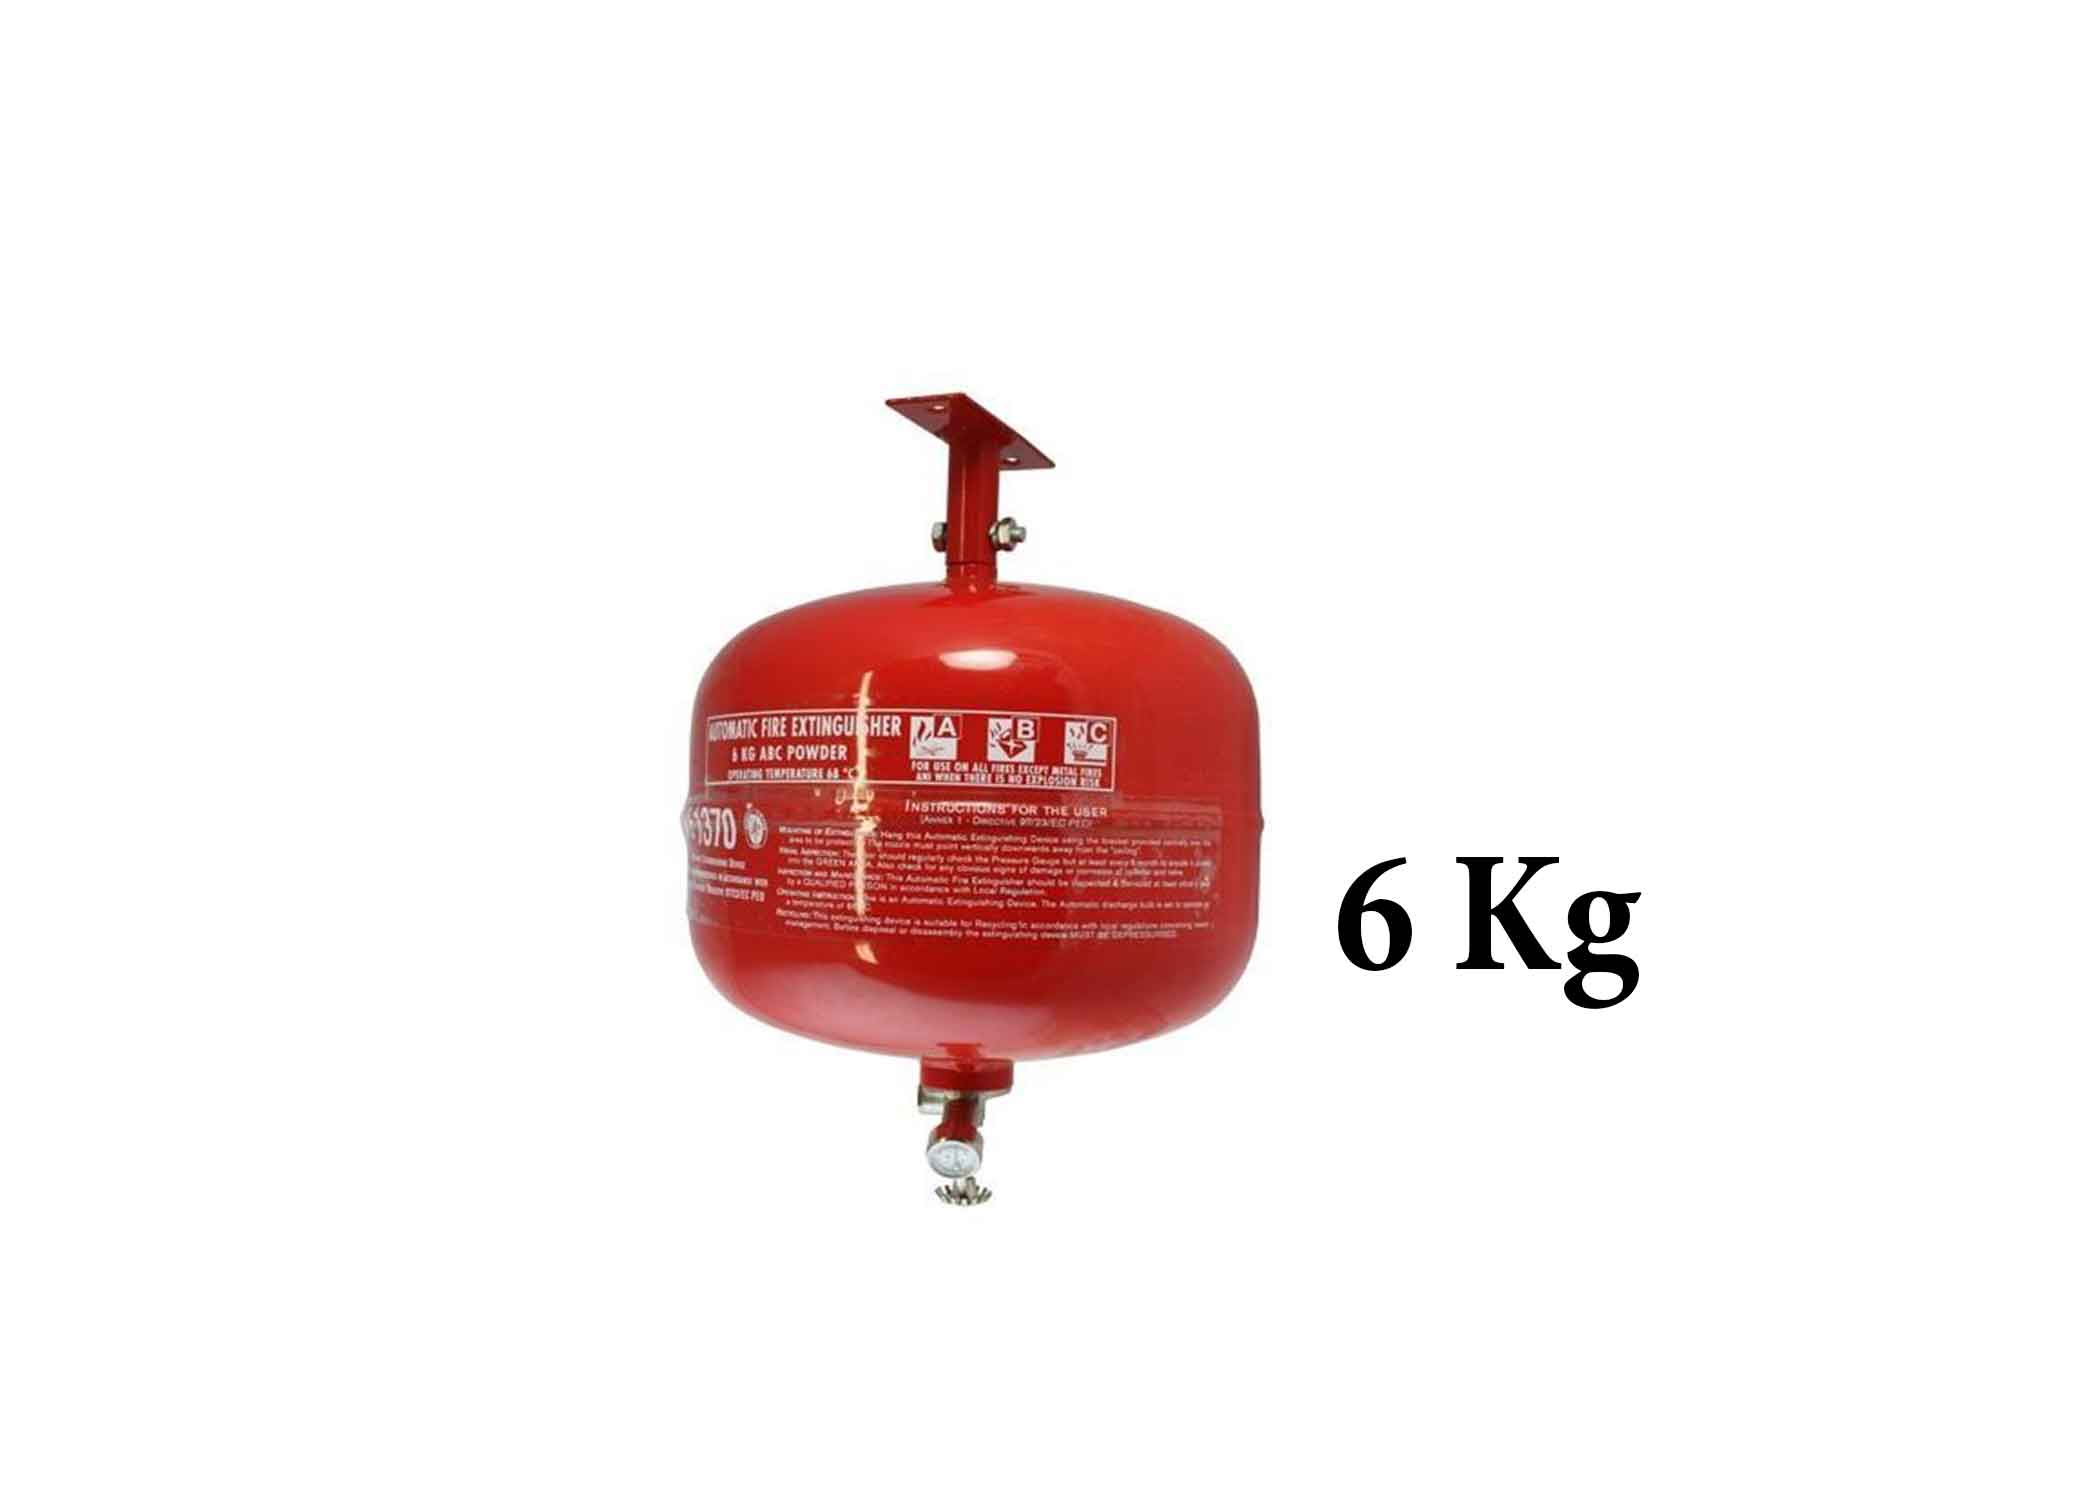 6 KG Auto Fire Extinguisher